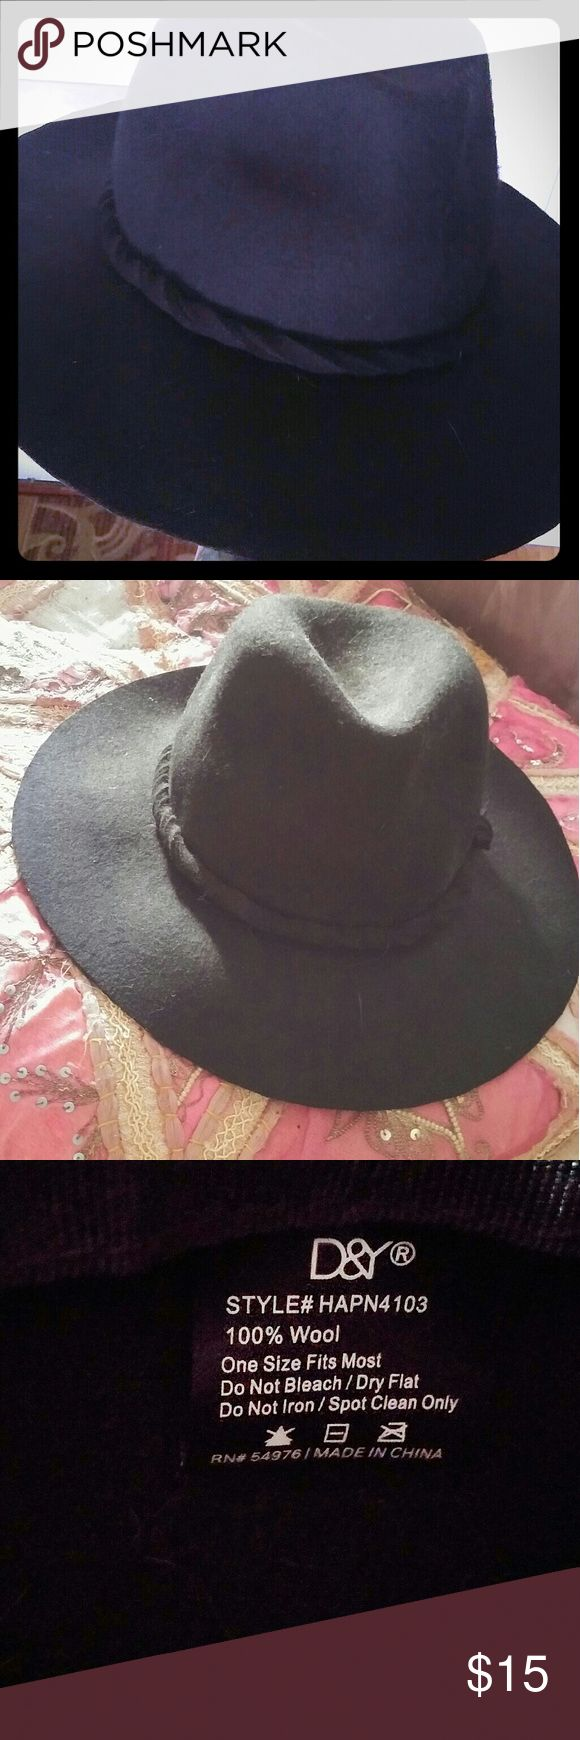 Black hipster hat Soft formed so won't wrinkle or break. No flaws Accessories Hats